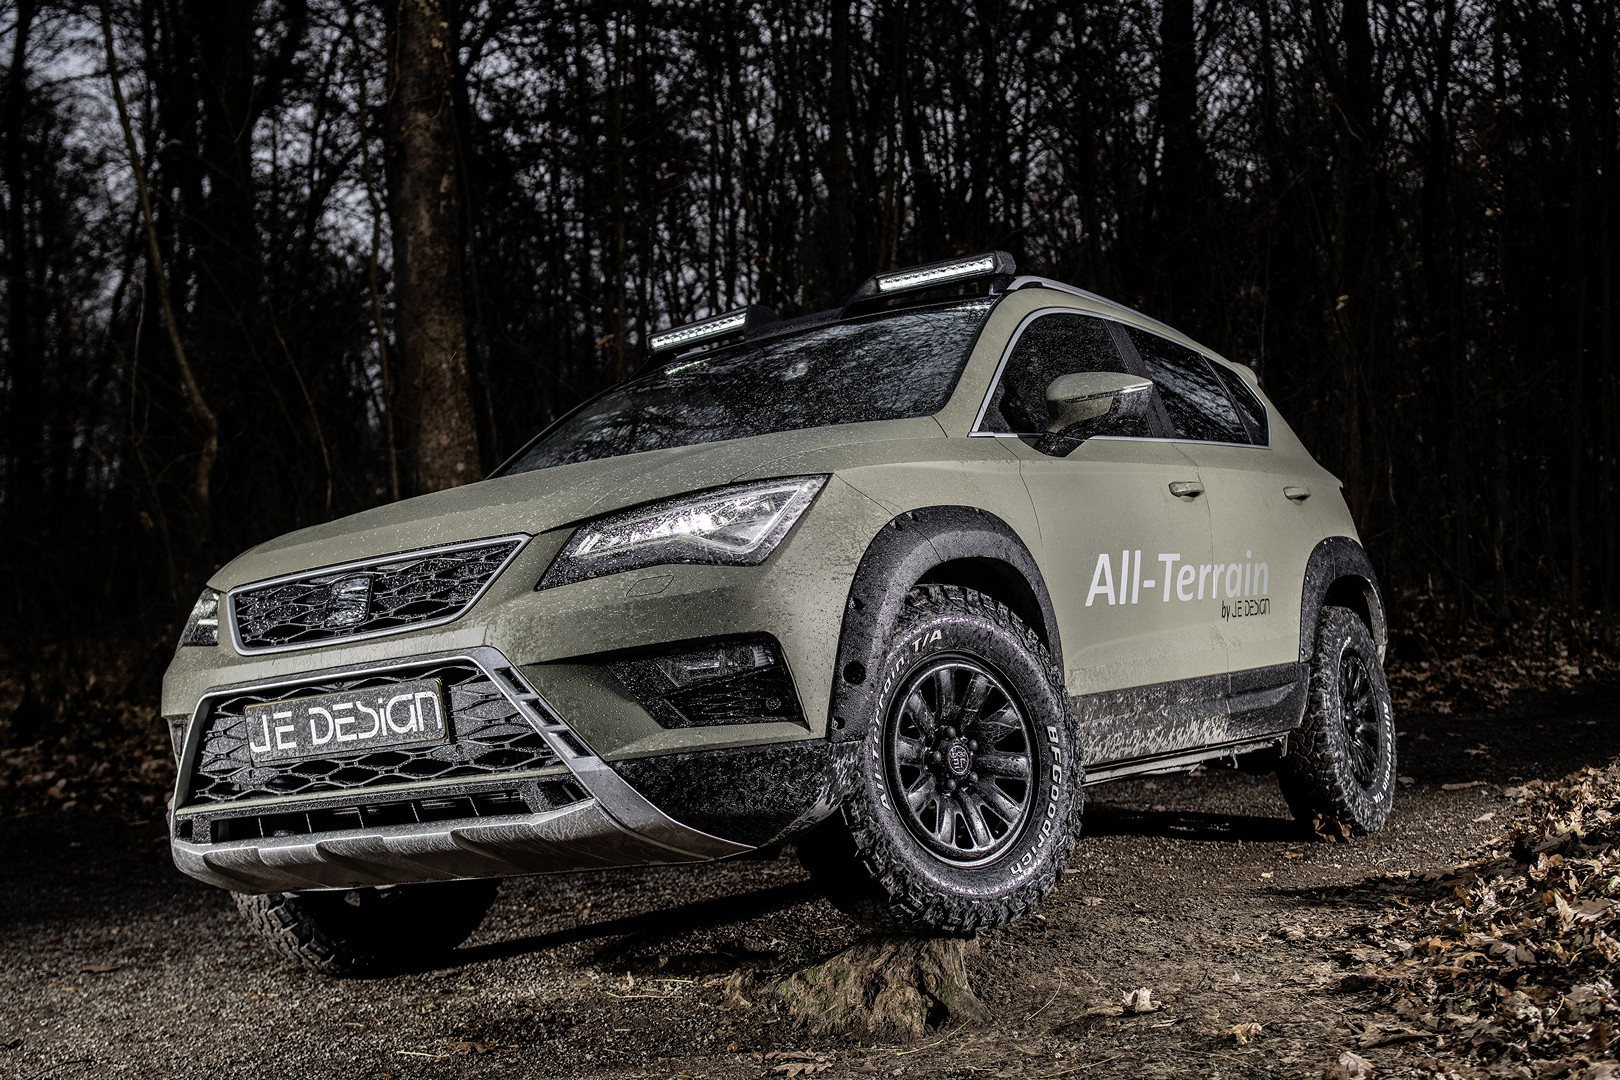 Seat_Ateca_by_JE_Design_0005